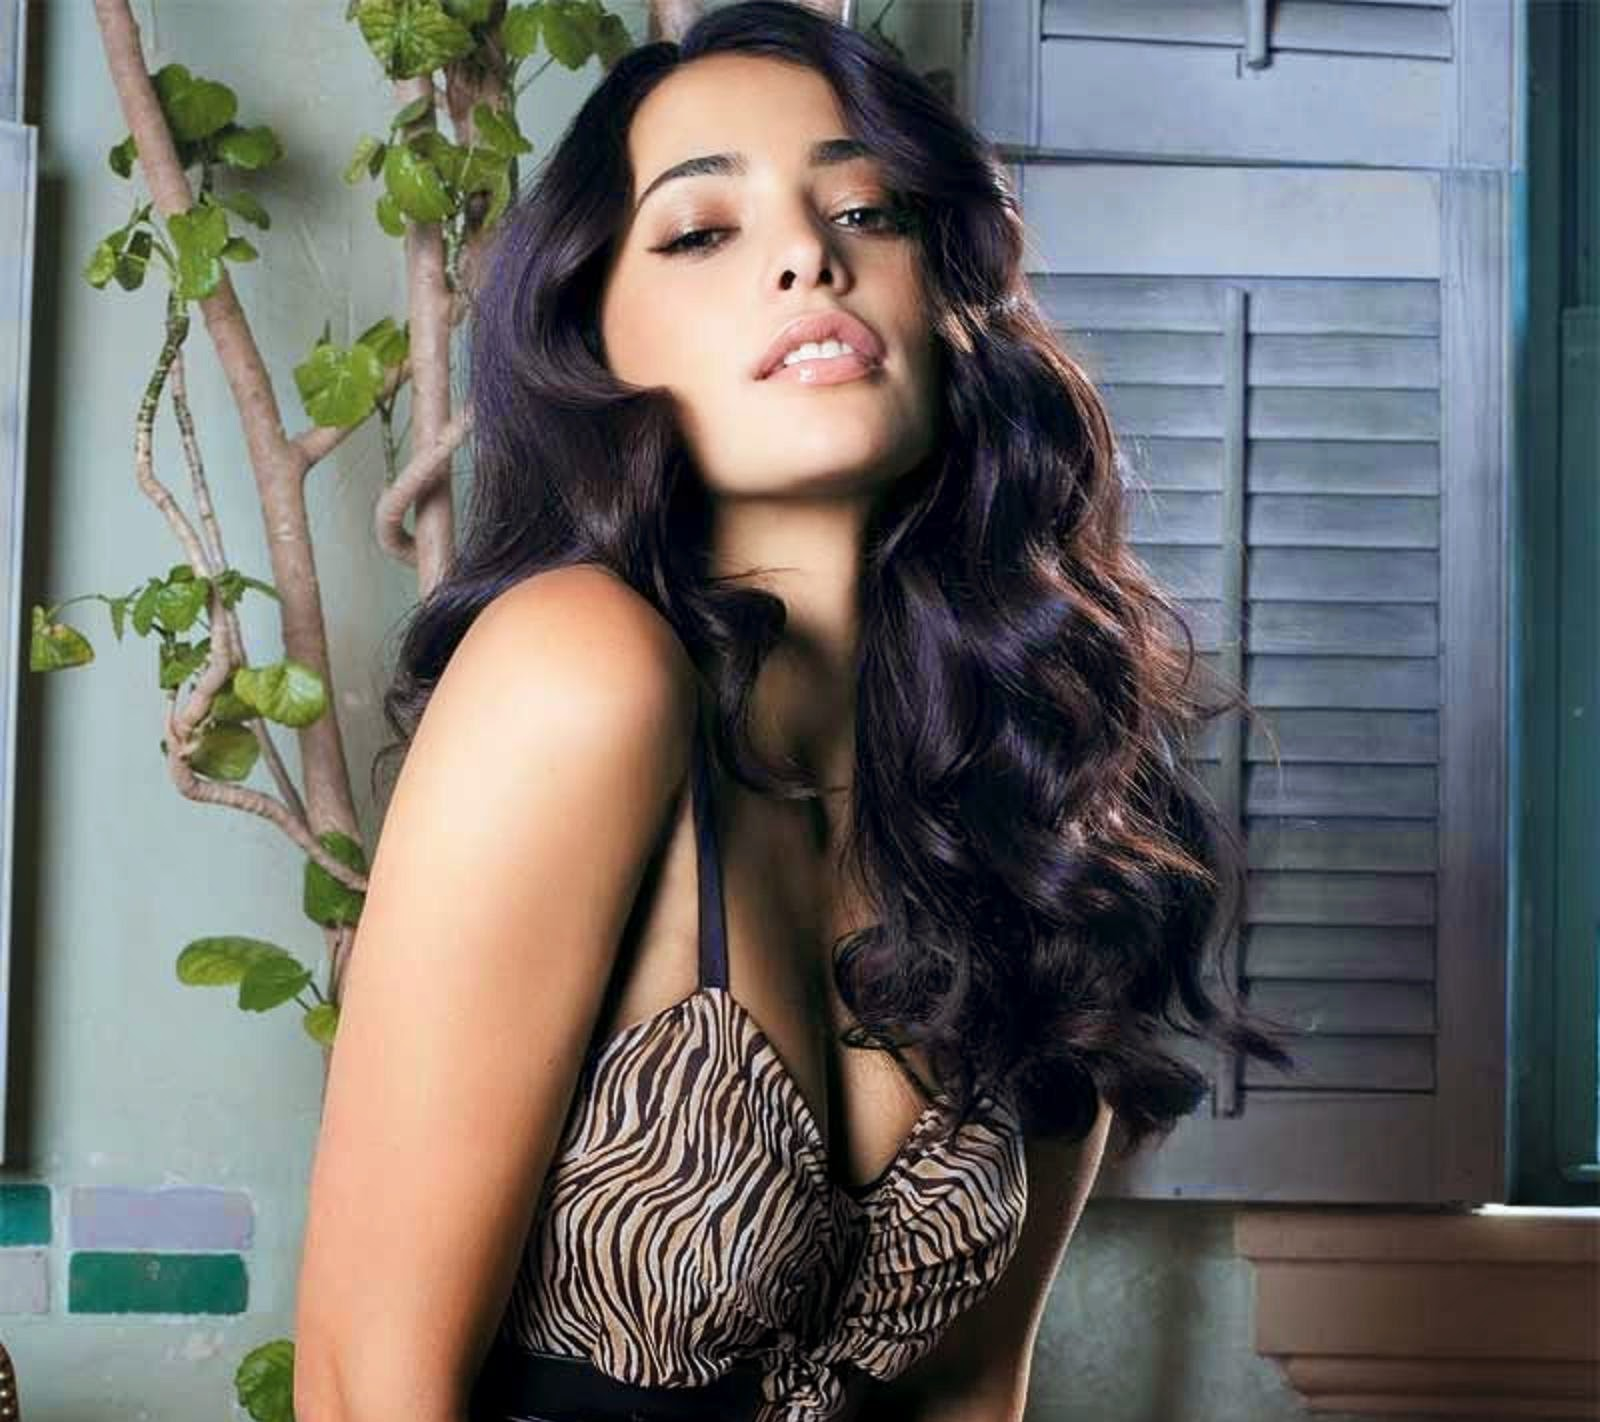 Natalie Martinez Wallpapers Free Download